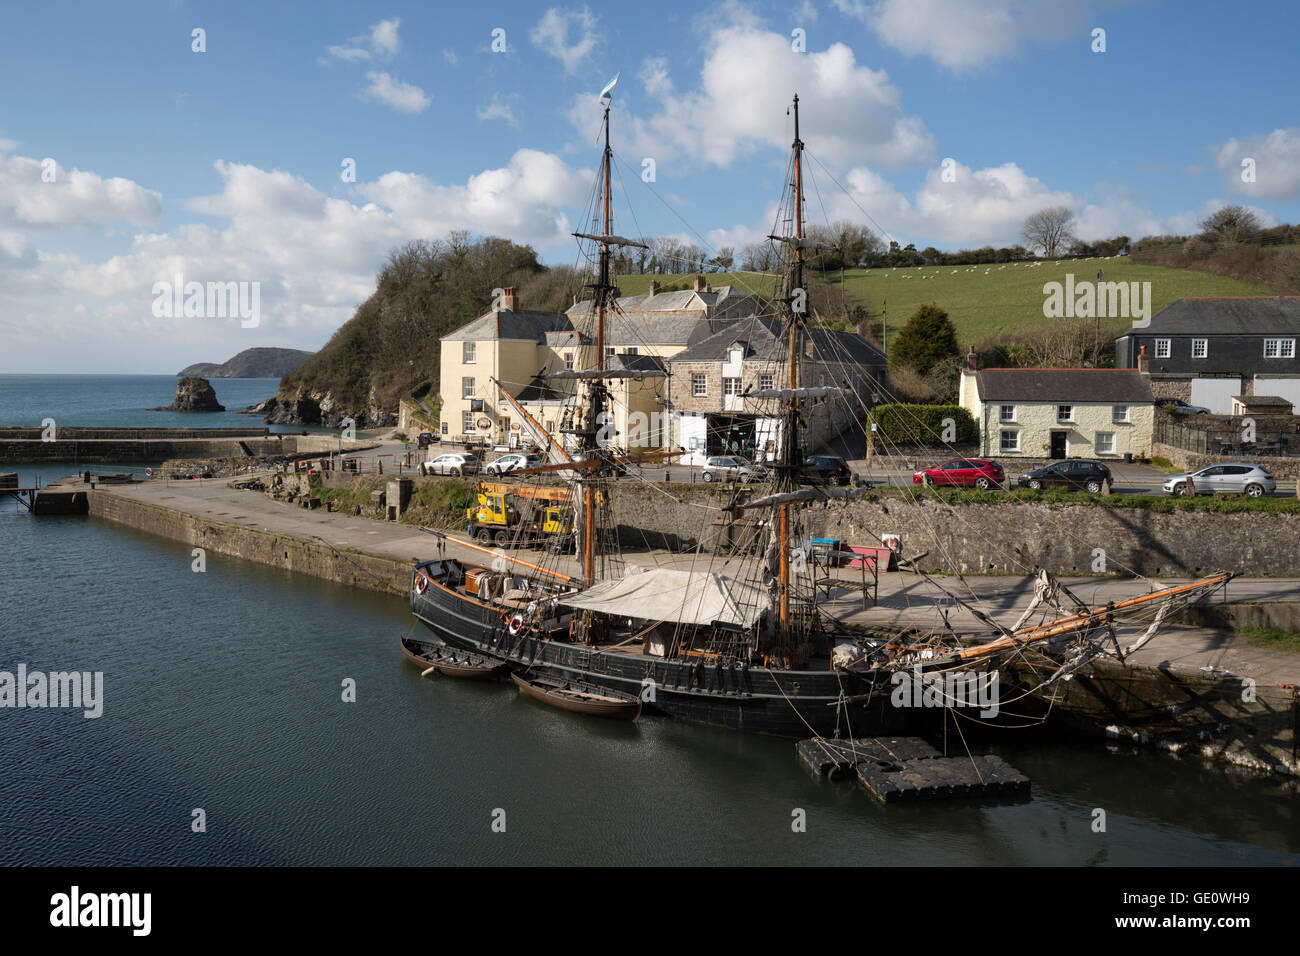 Tall ship in historic harbour, Charlestown, near St Austell, Cornwall, England, United Kingdom, Europe - Stock Image